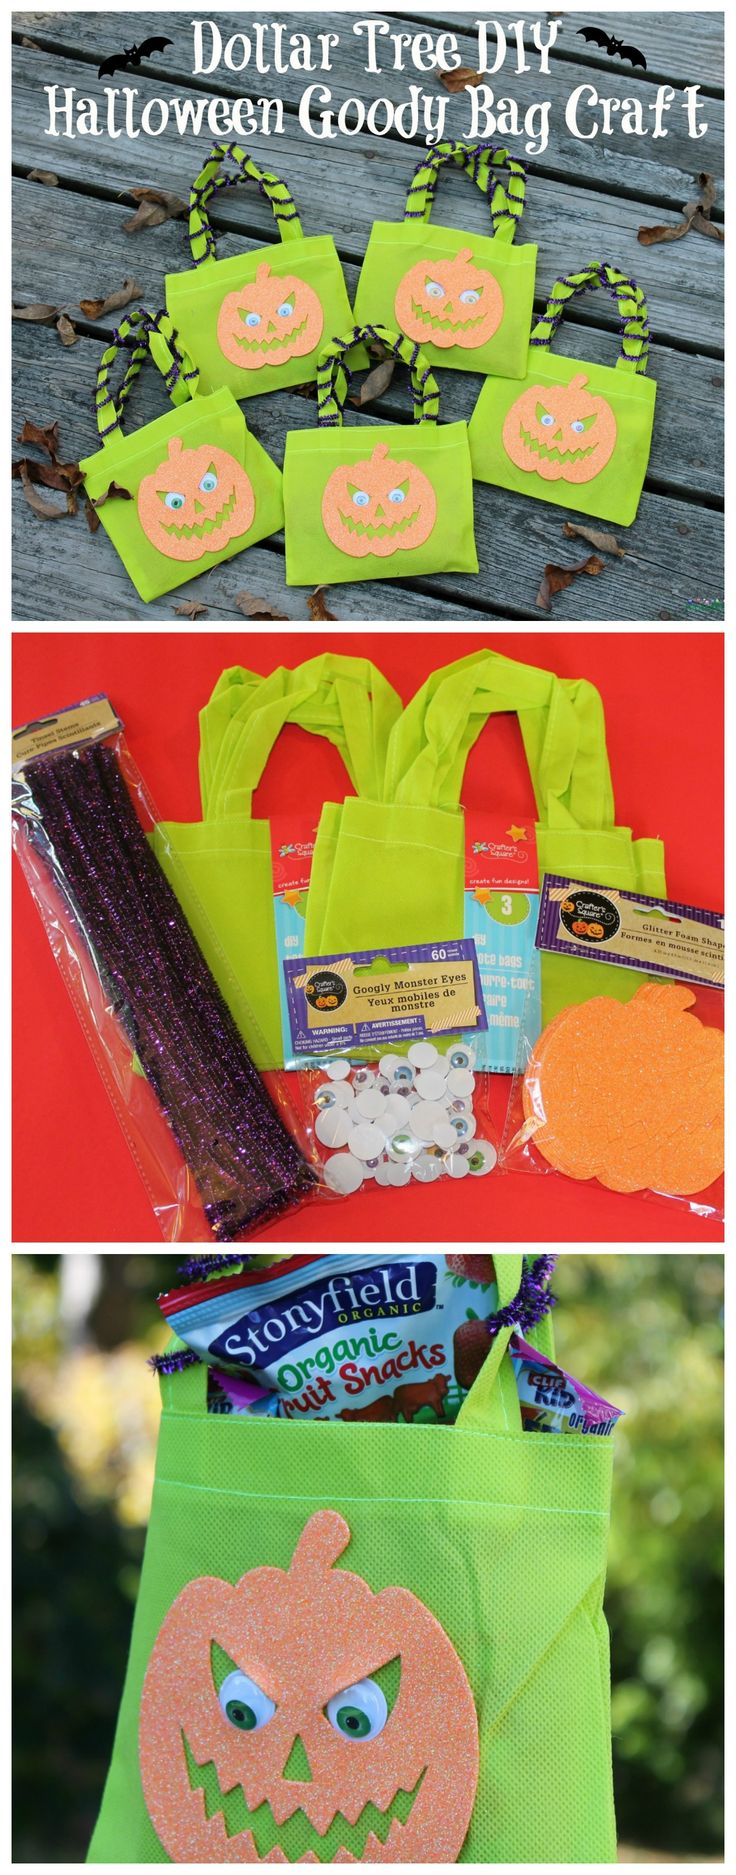 Super easy Halloween DIY craft made from items from the Dollar Tree. Fill with candy or novelty toys.